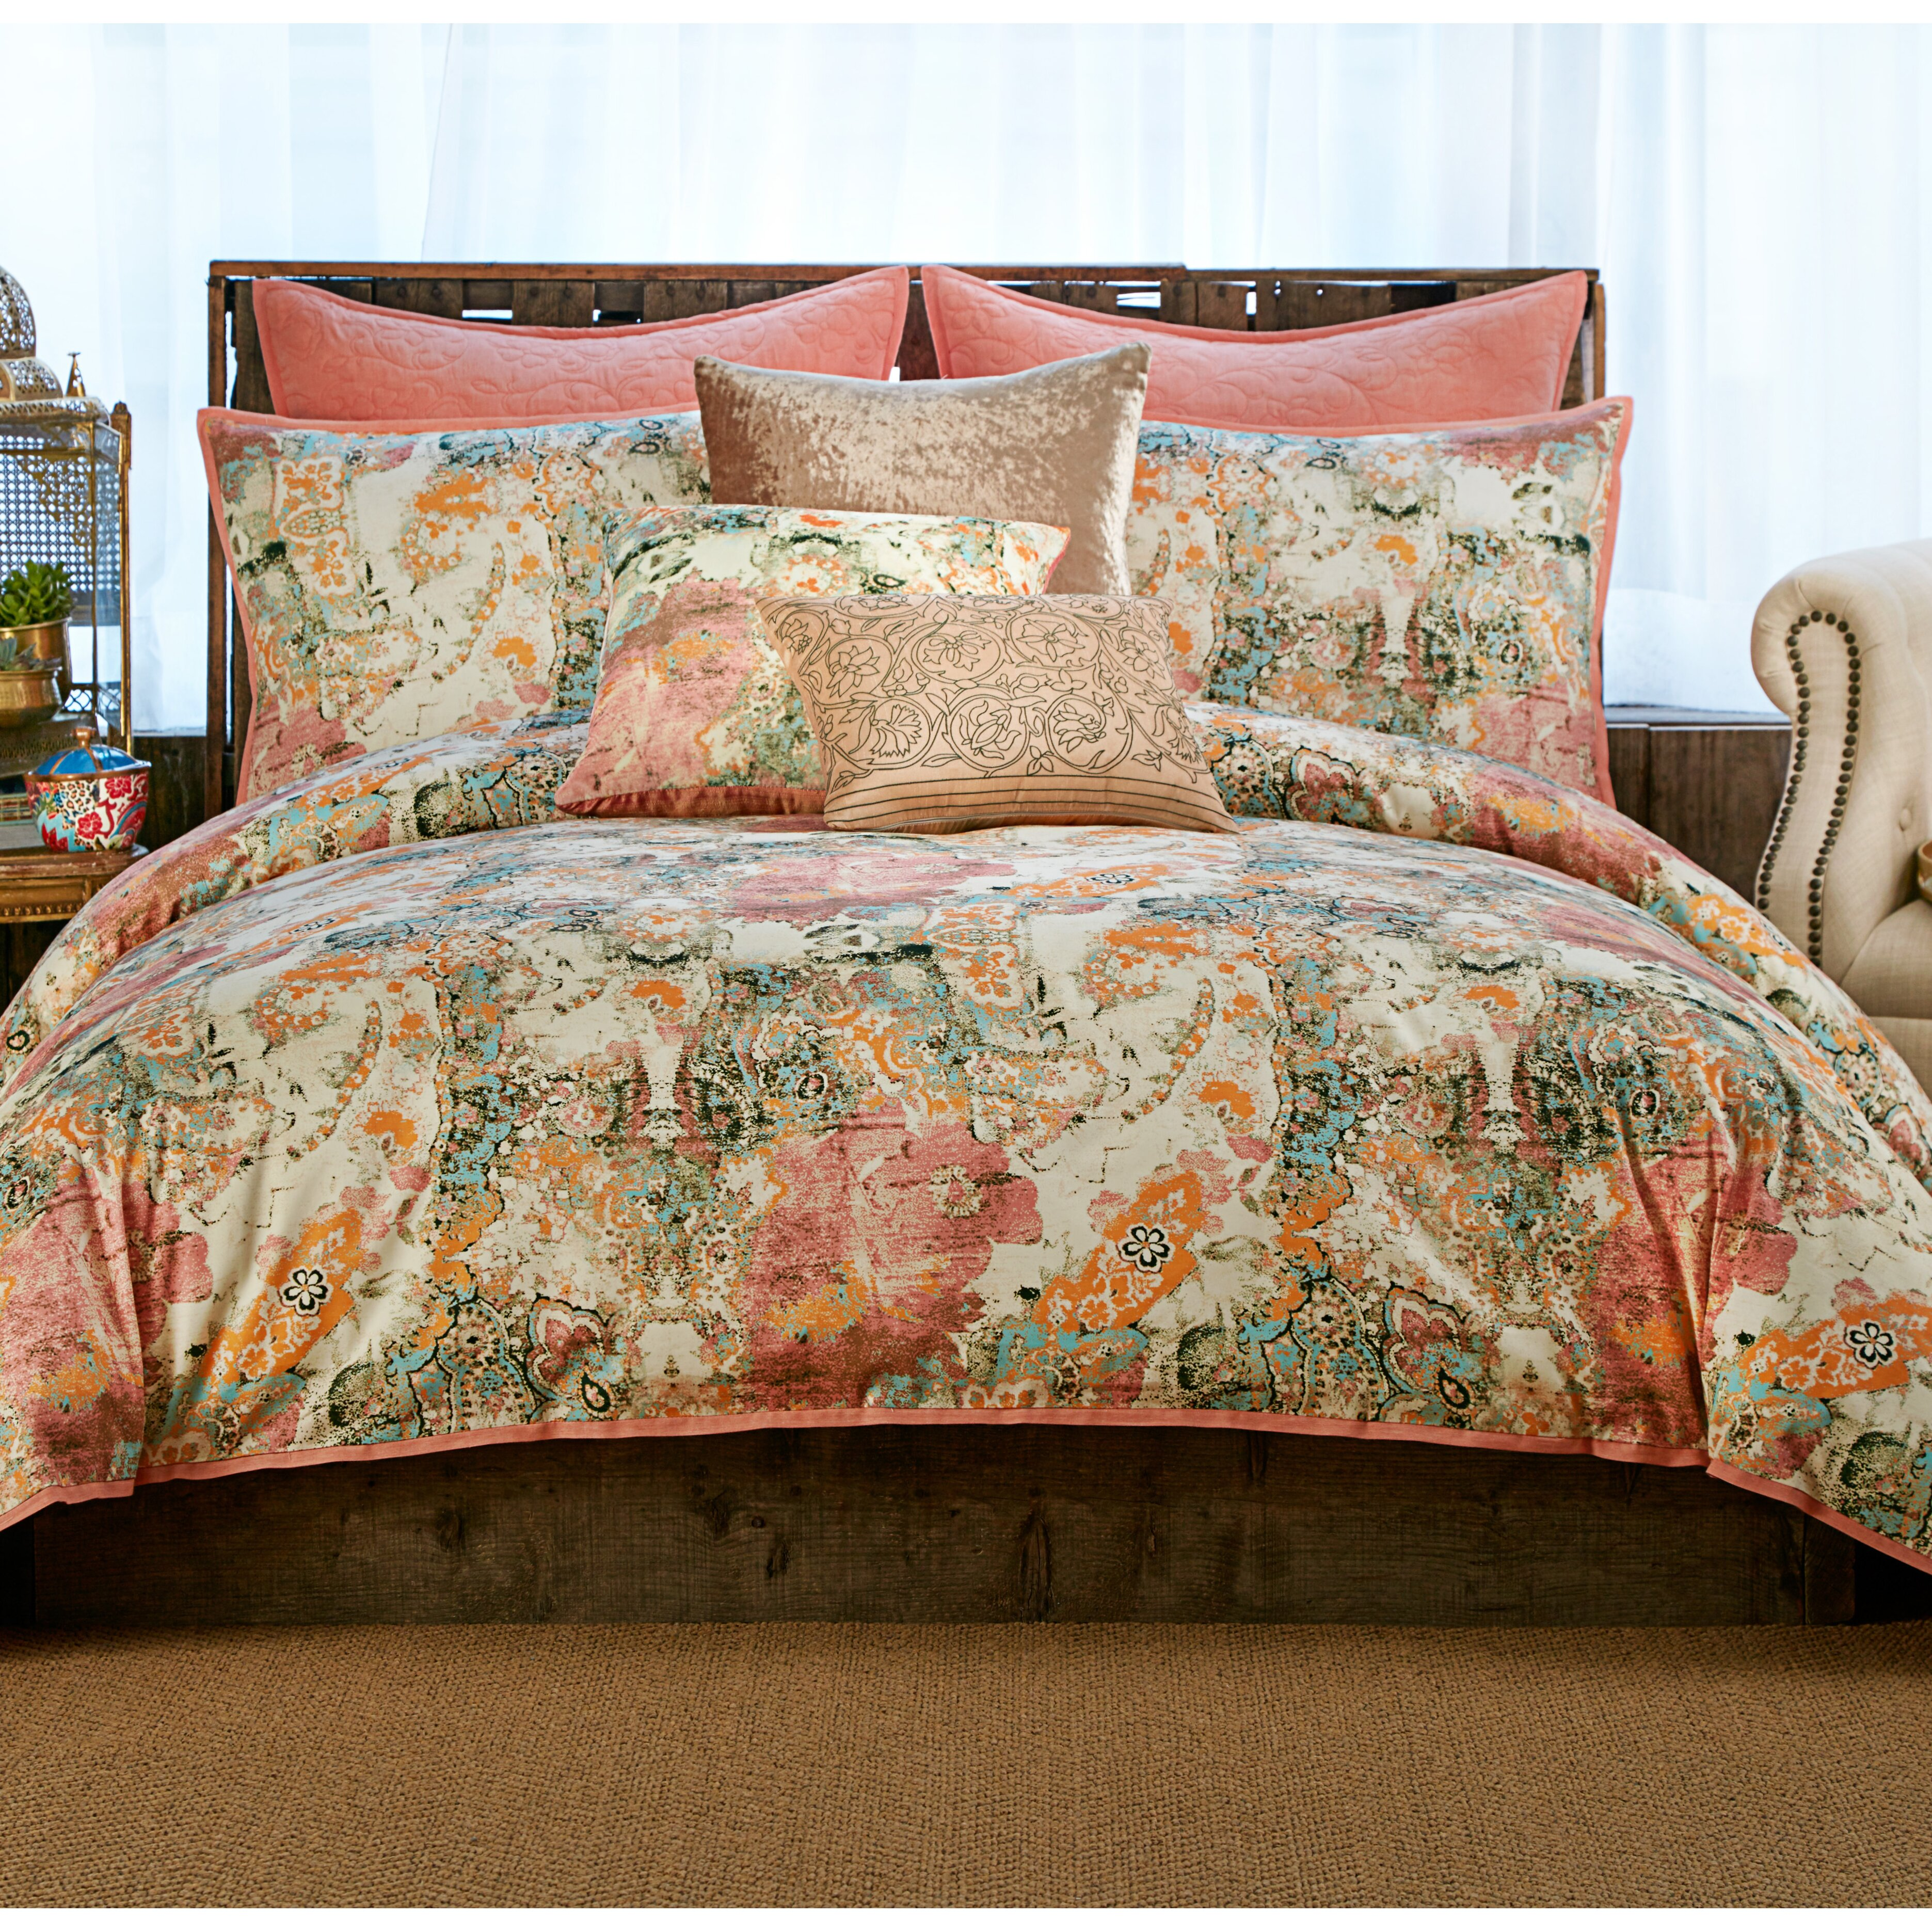 Tracy Porter Wish Comforter Set Reviews